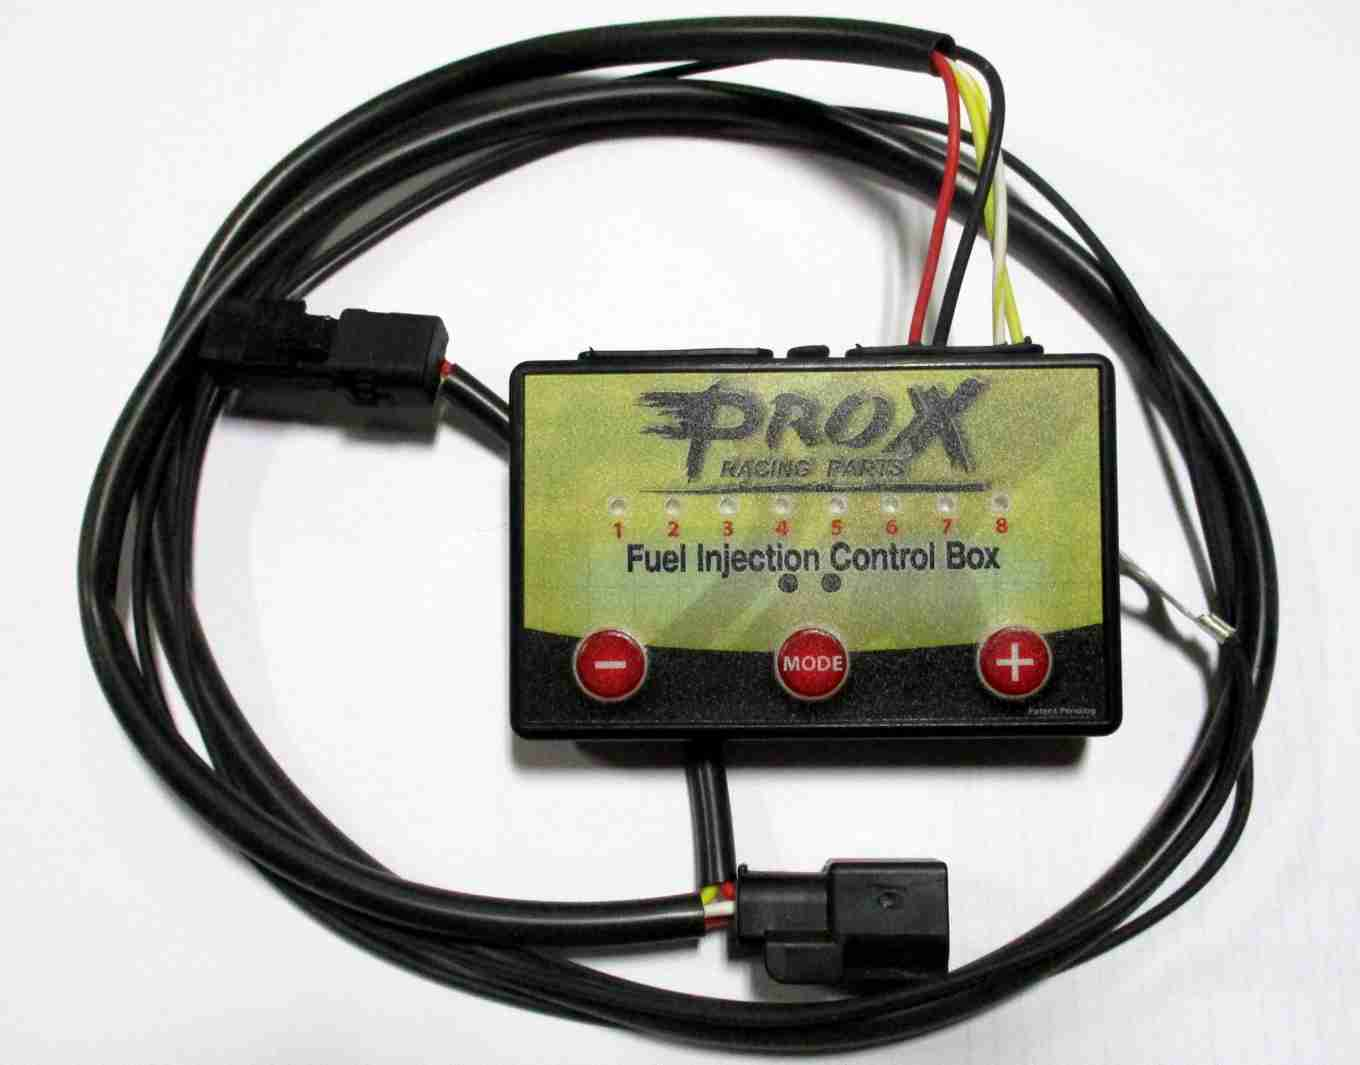 Injection Control Box